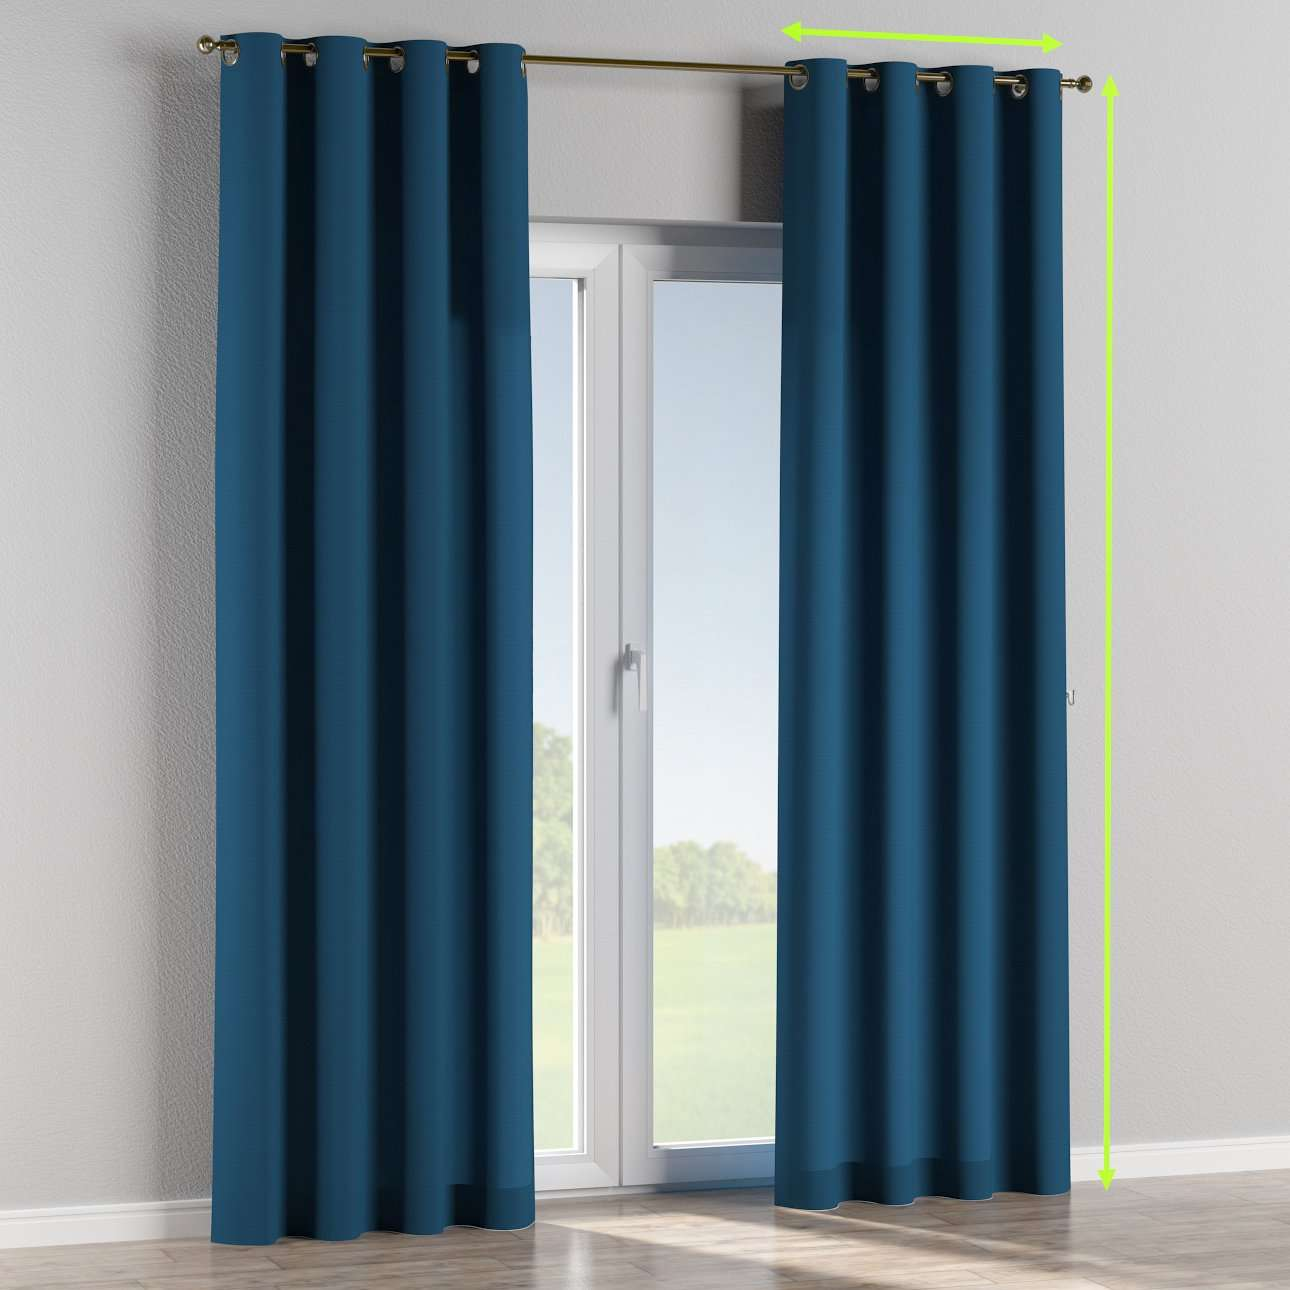 Eyelet lined curtains in collection Cotton Panama, fabric: 702-30